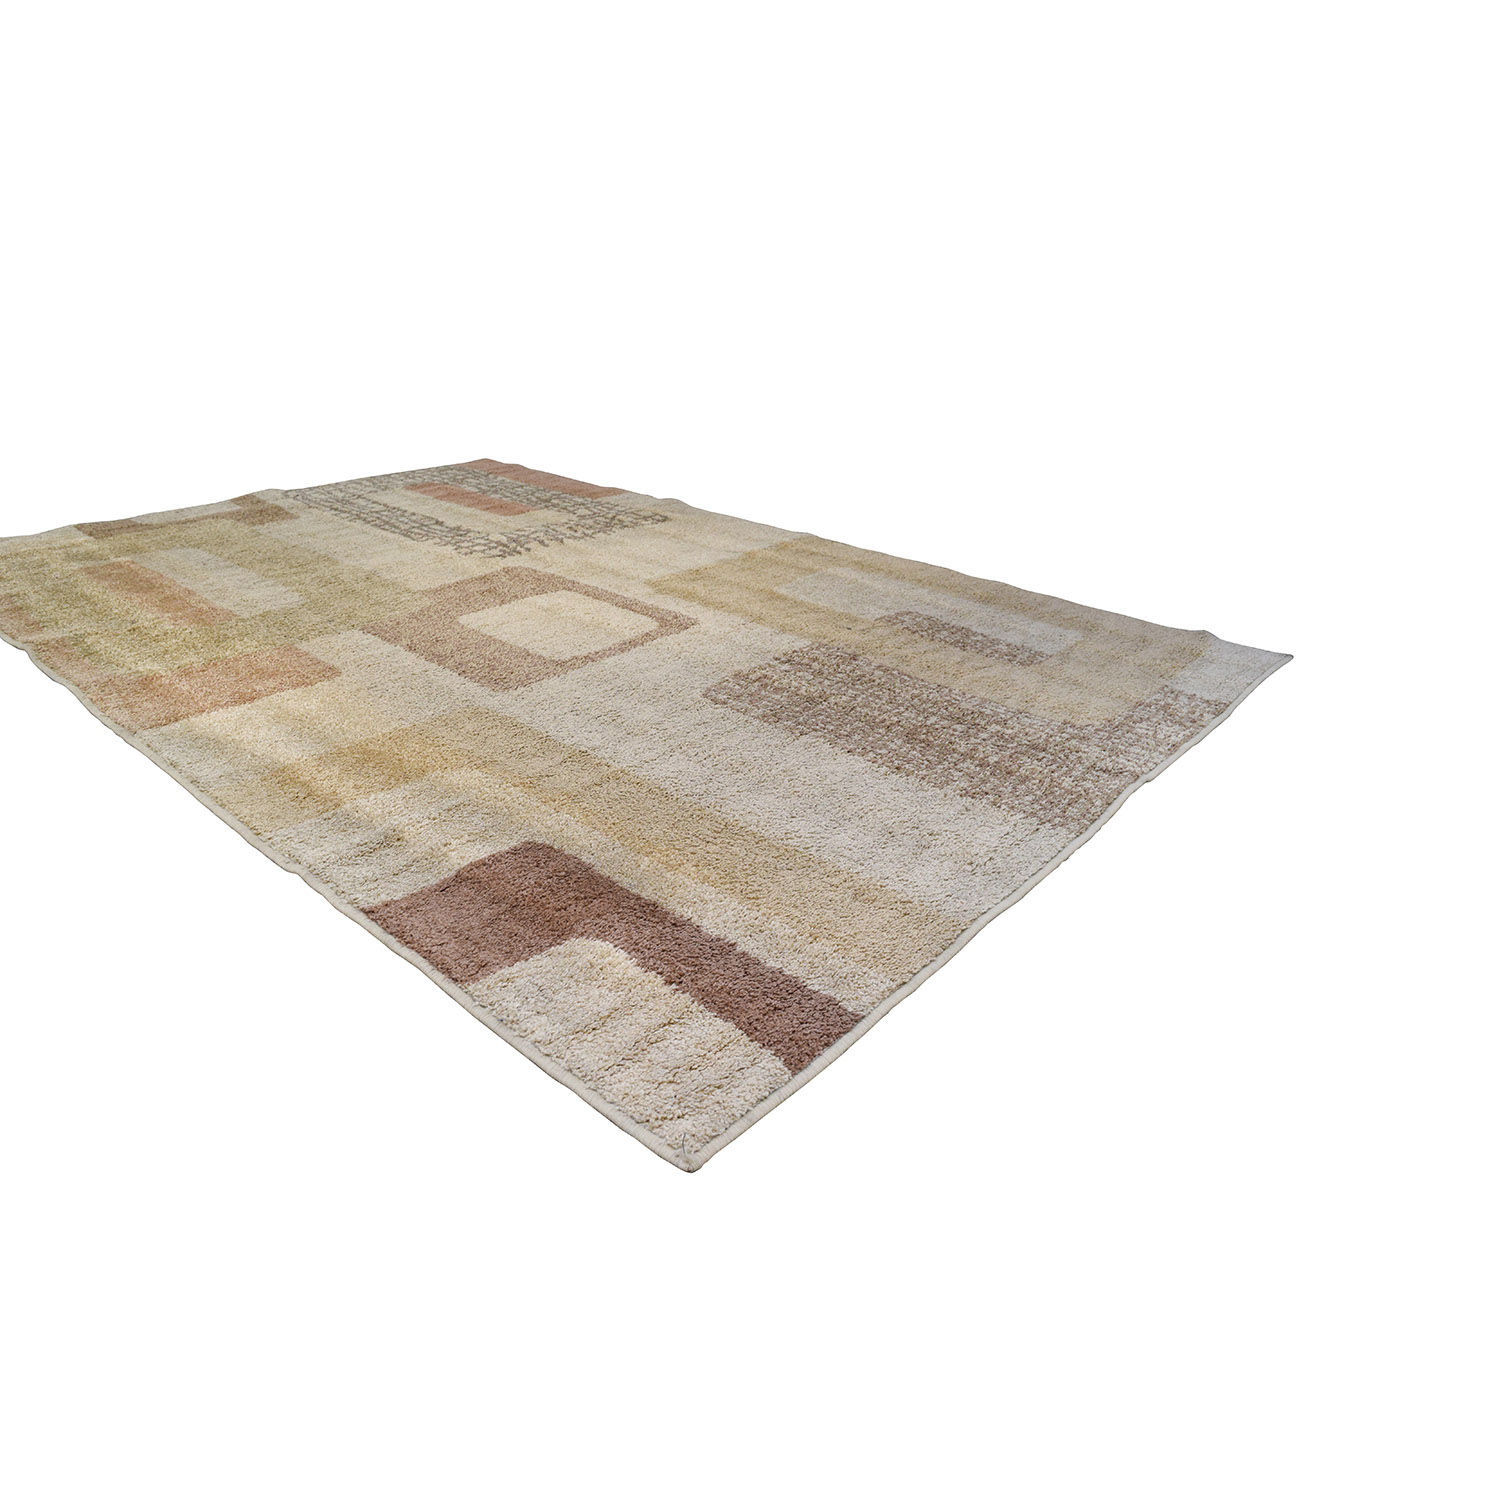 Raymour and Flanigan Raymour & Flanigan Beige Pattern Rug Decor